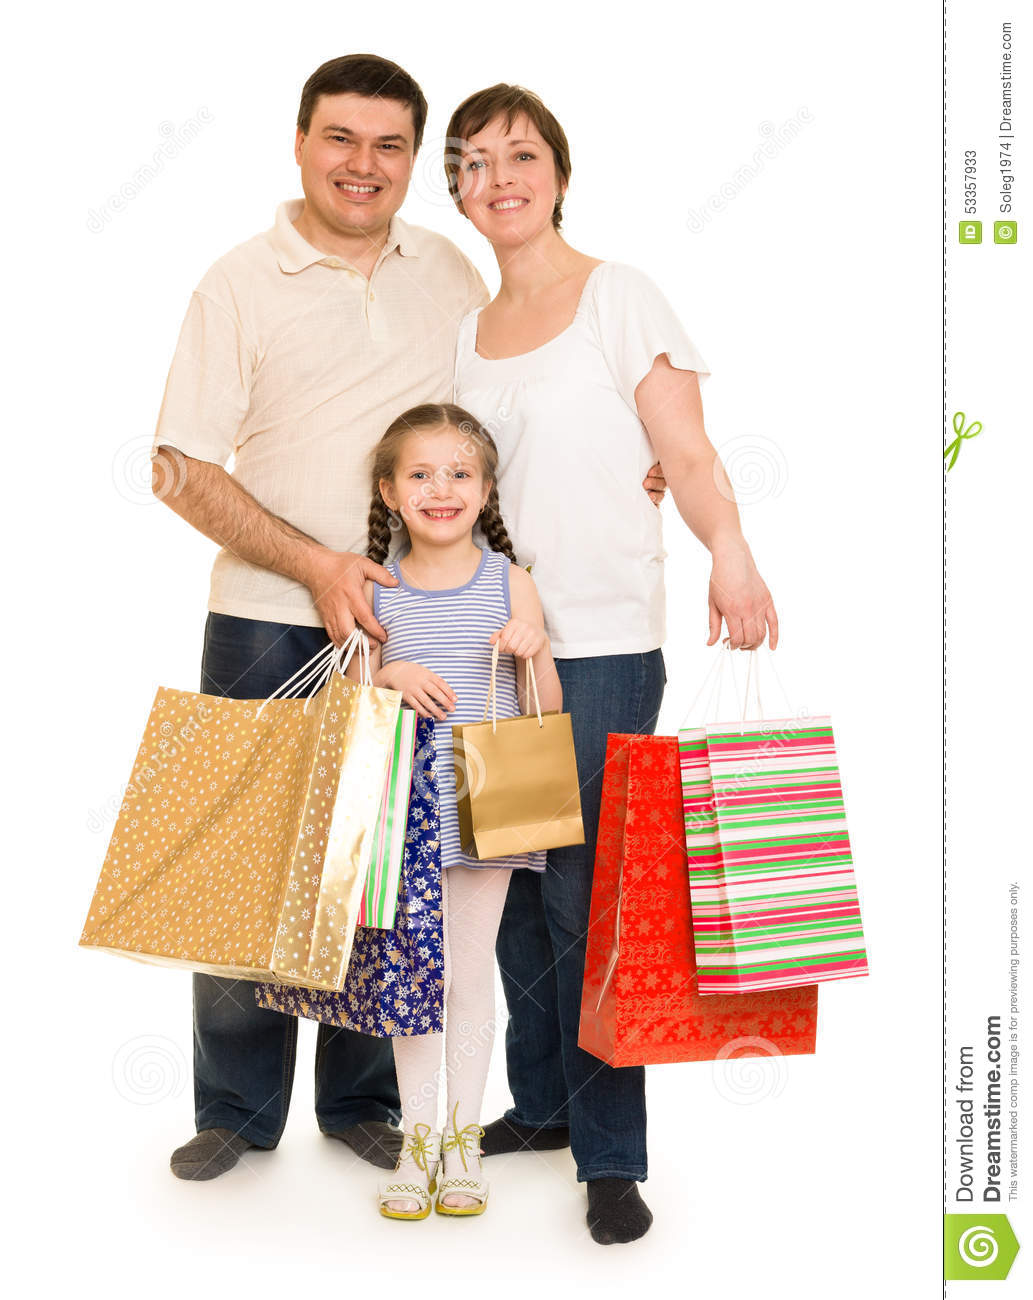 Happy Family With Shopping Bag Stock Photo - Image: 53357933